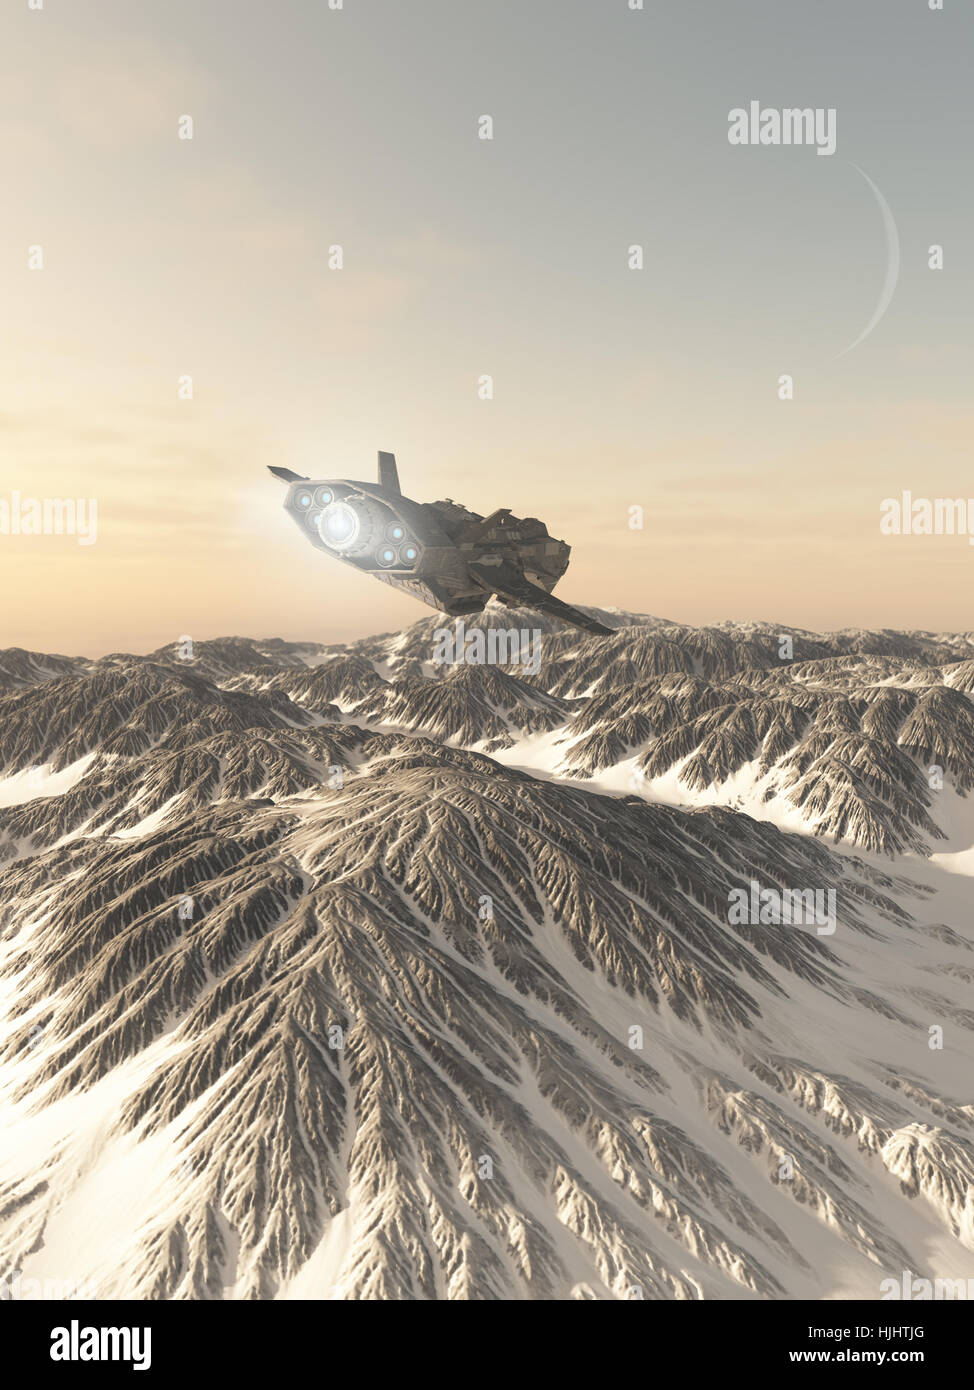 Interplanetary Spaceship Flying Over Snow Covered Mountains - science fiction illustration - Stock Image